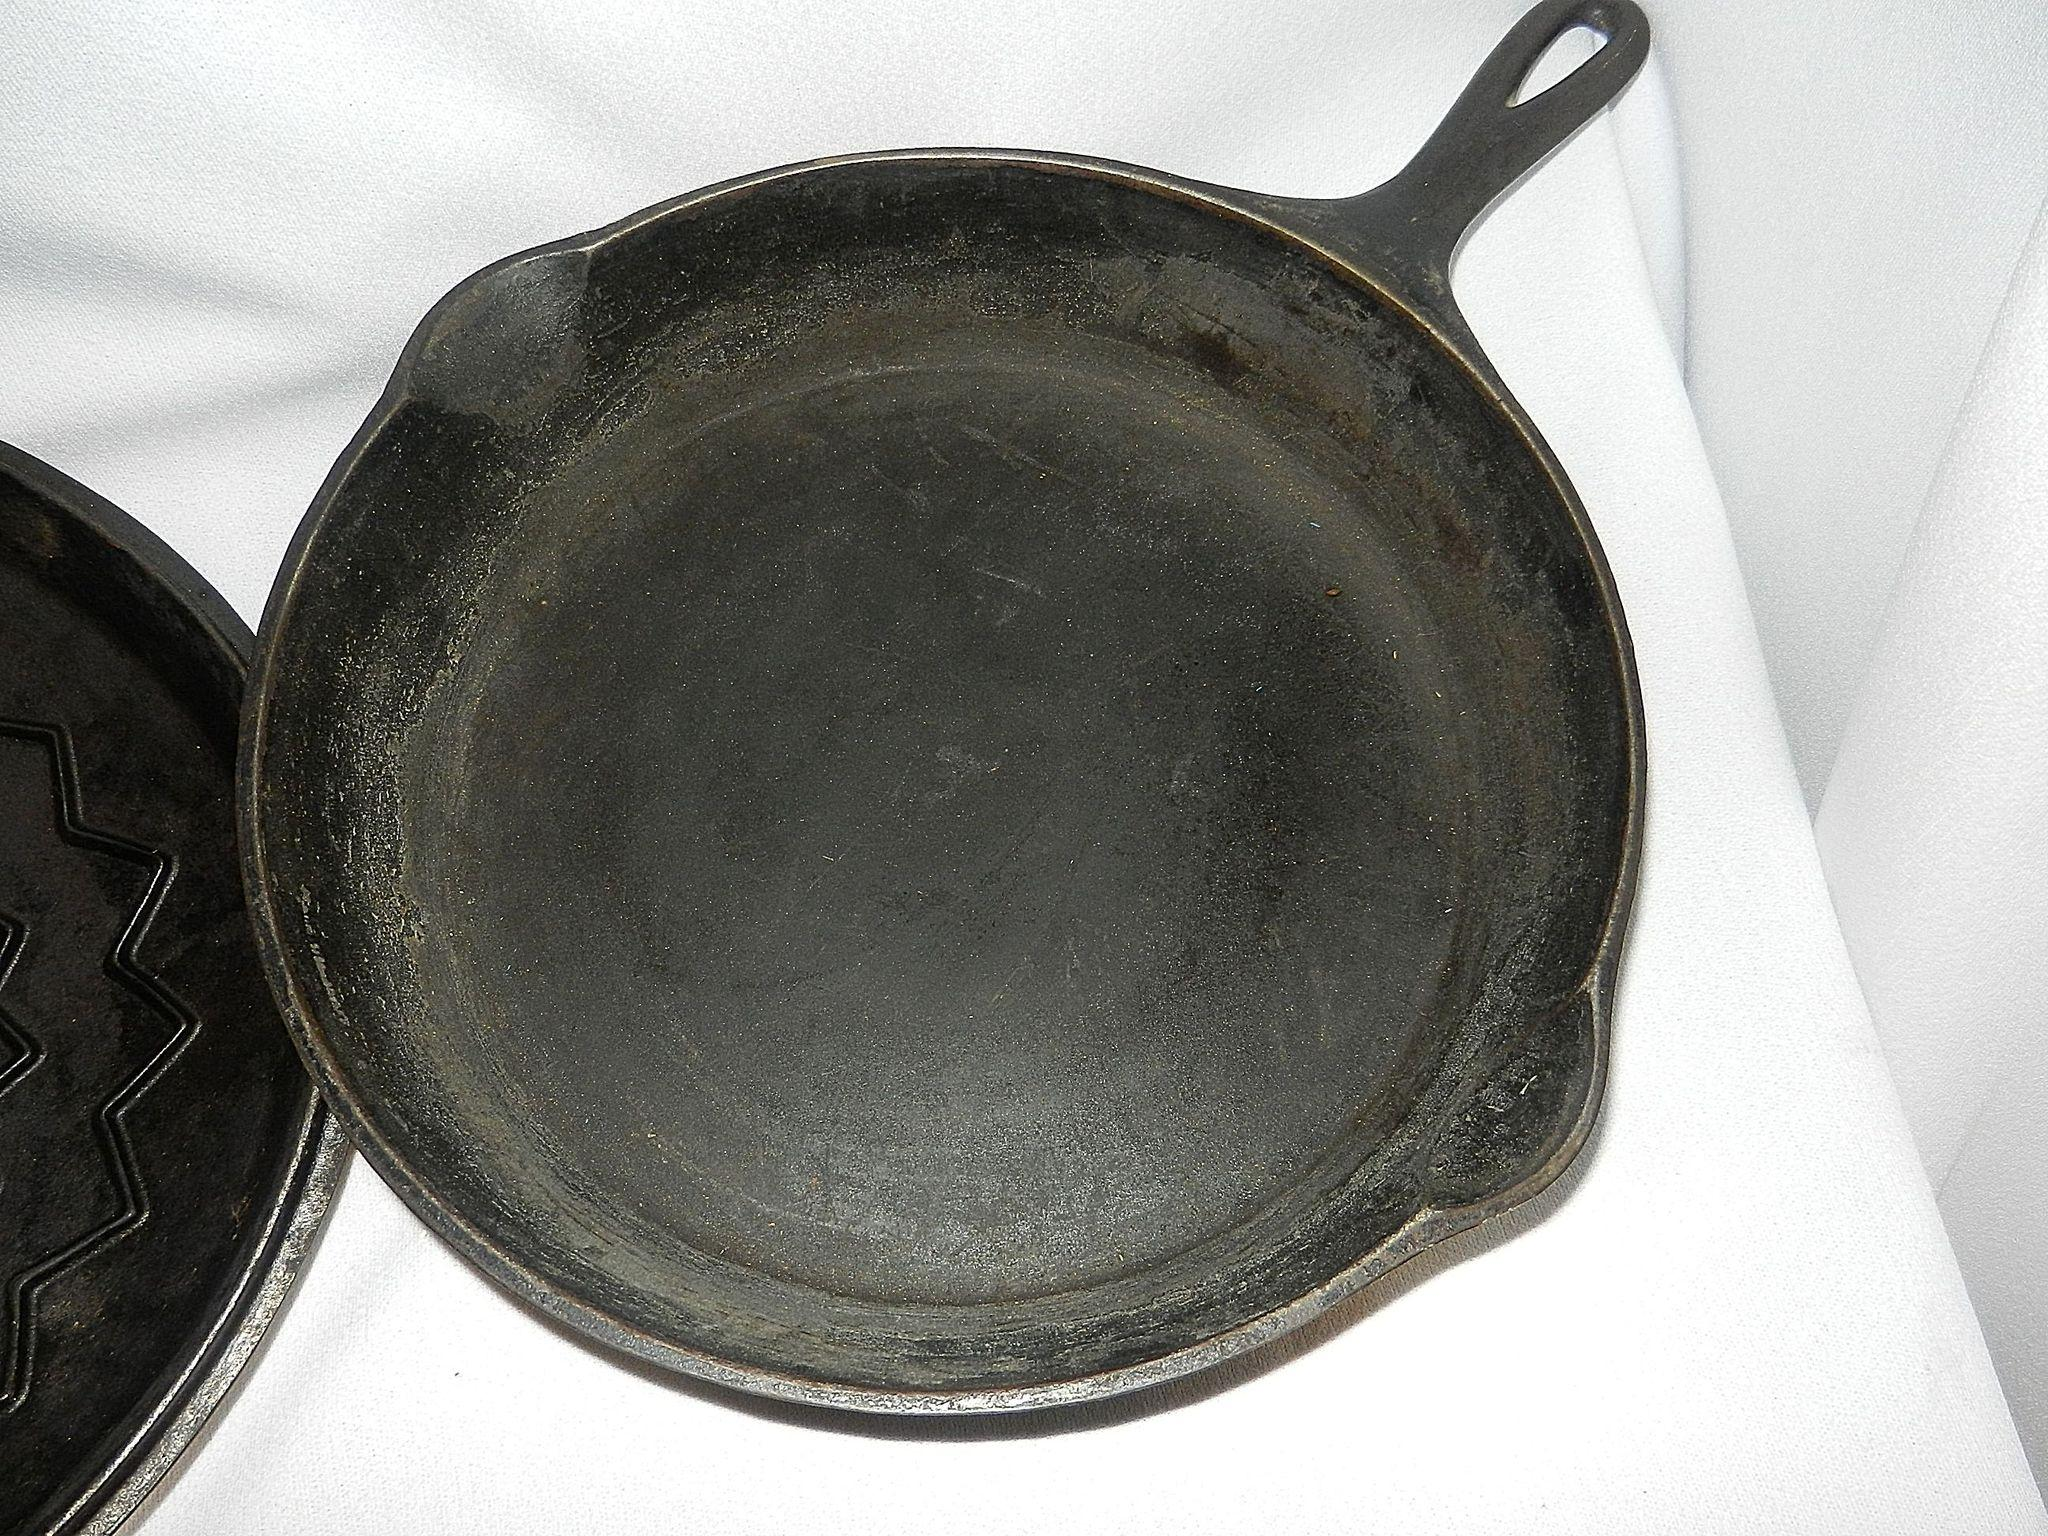 dating wagner ware Click this image for a larger picture of the wagner cast iron skillet if you've had any experience with cooking in cast iron, you'll know there's a difference between the modern-day cast iron pans and the classic antique iron cookware.